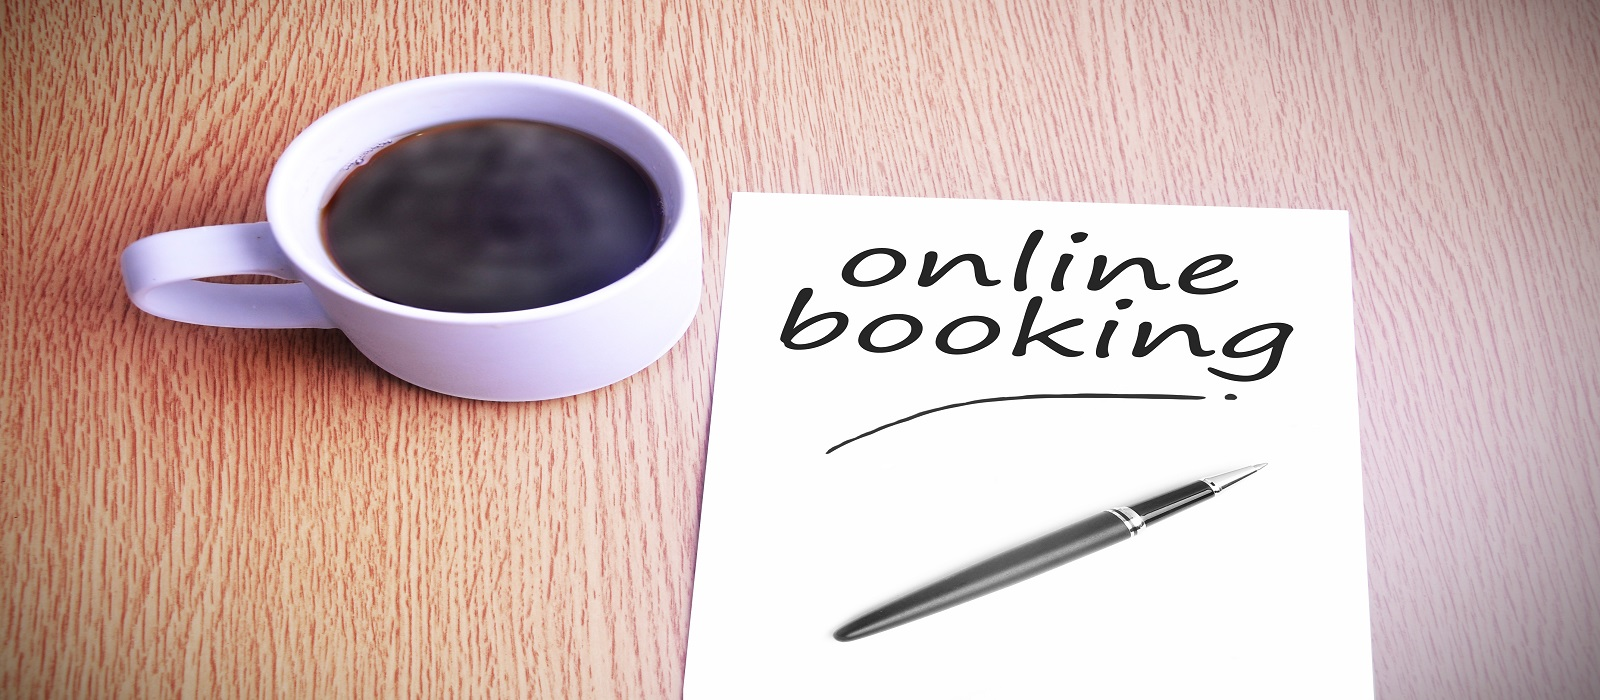 Banner image for Room Bookings @ Carleton